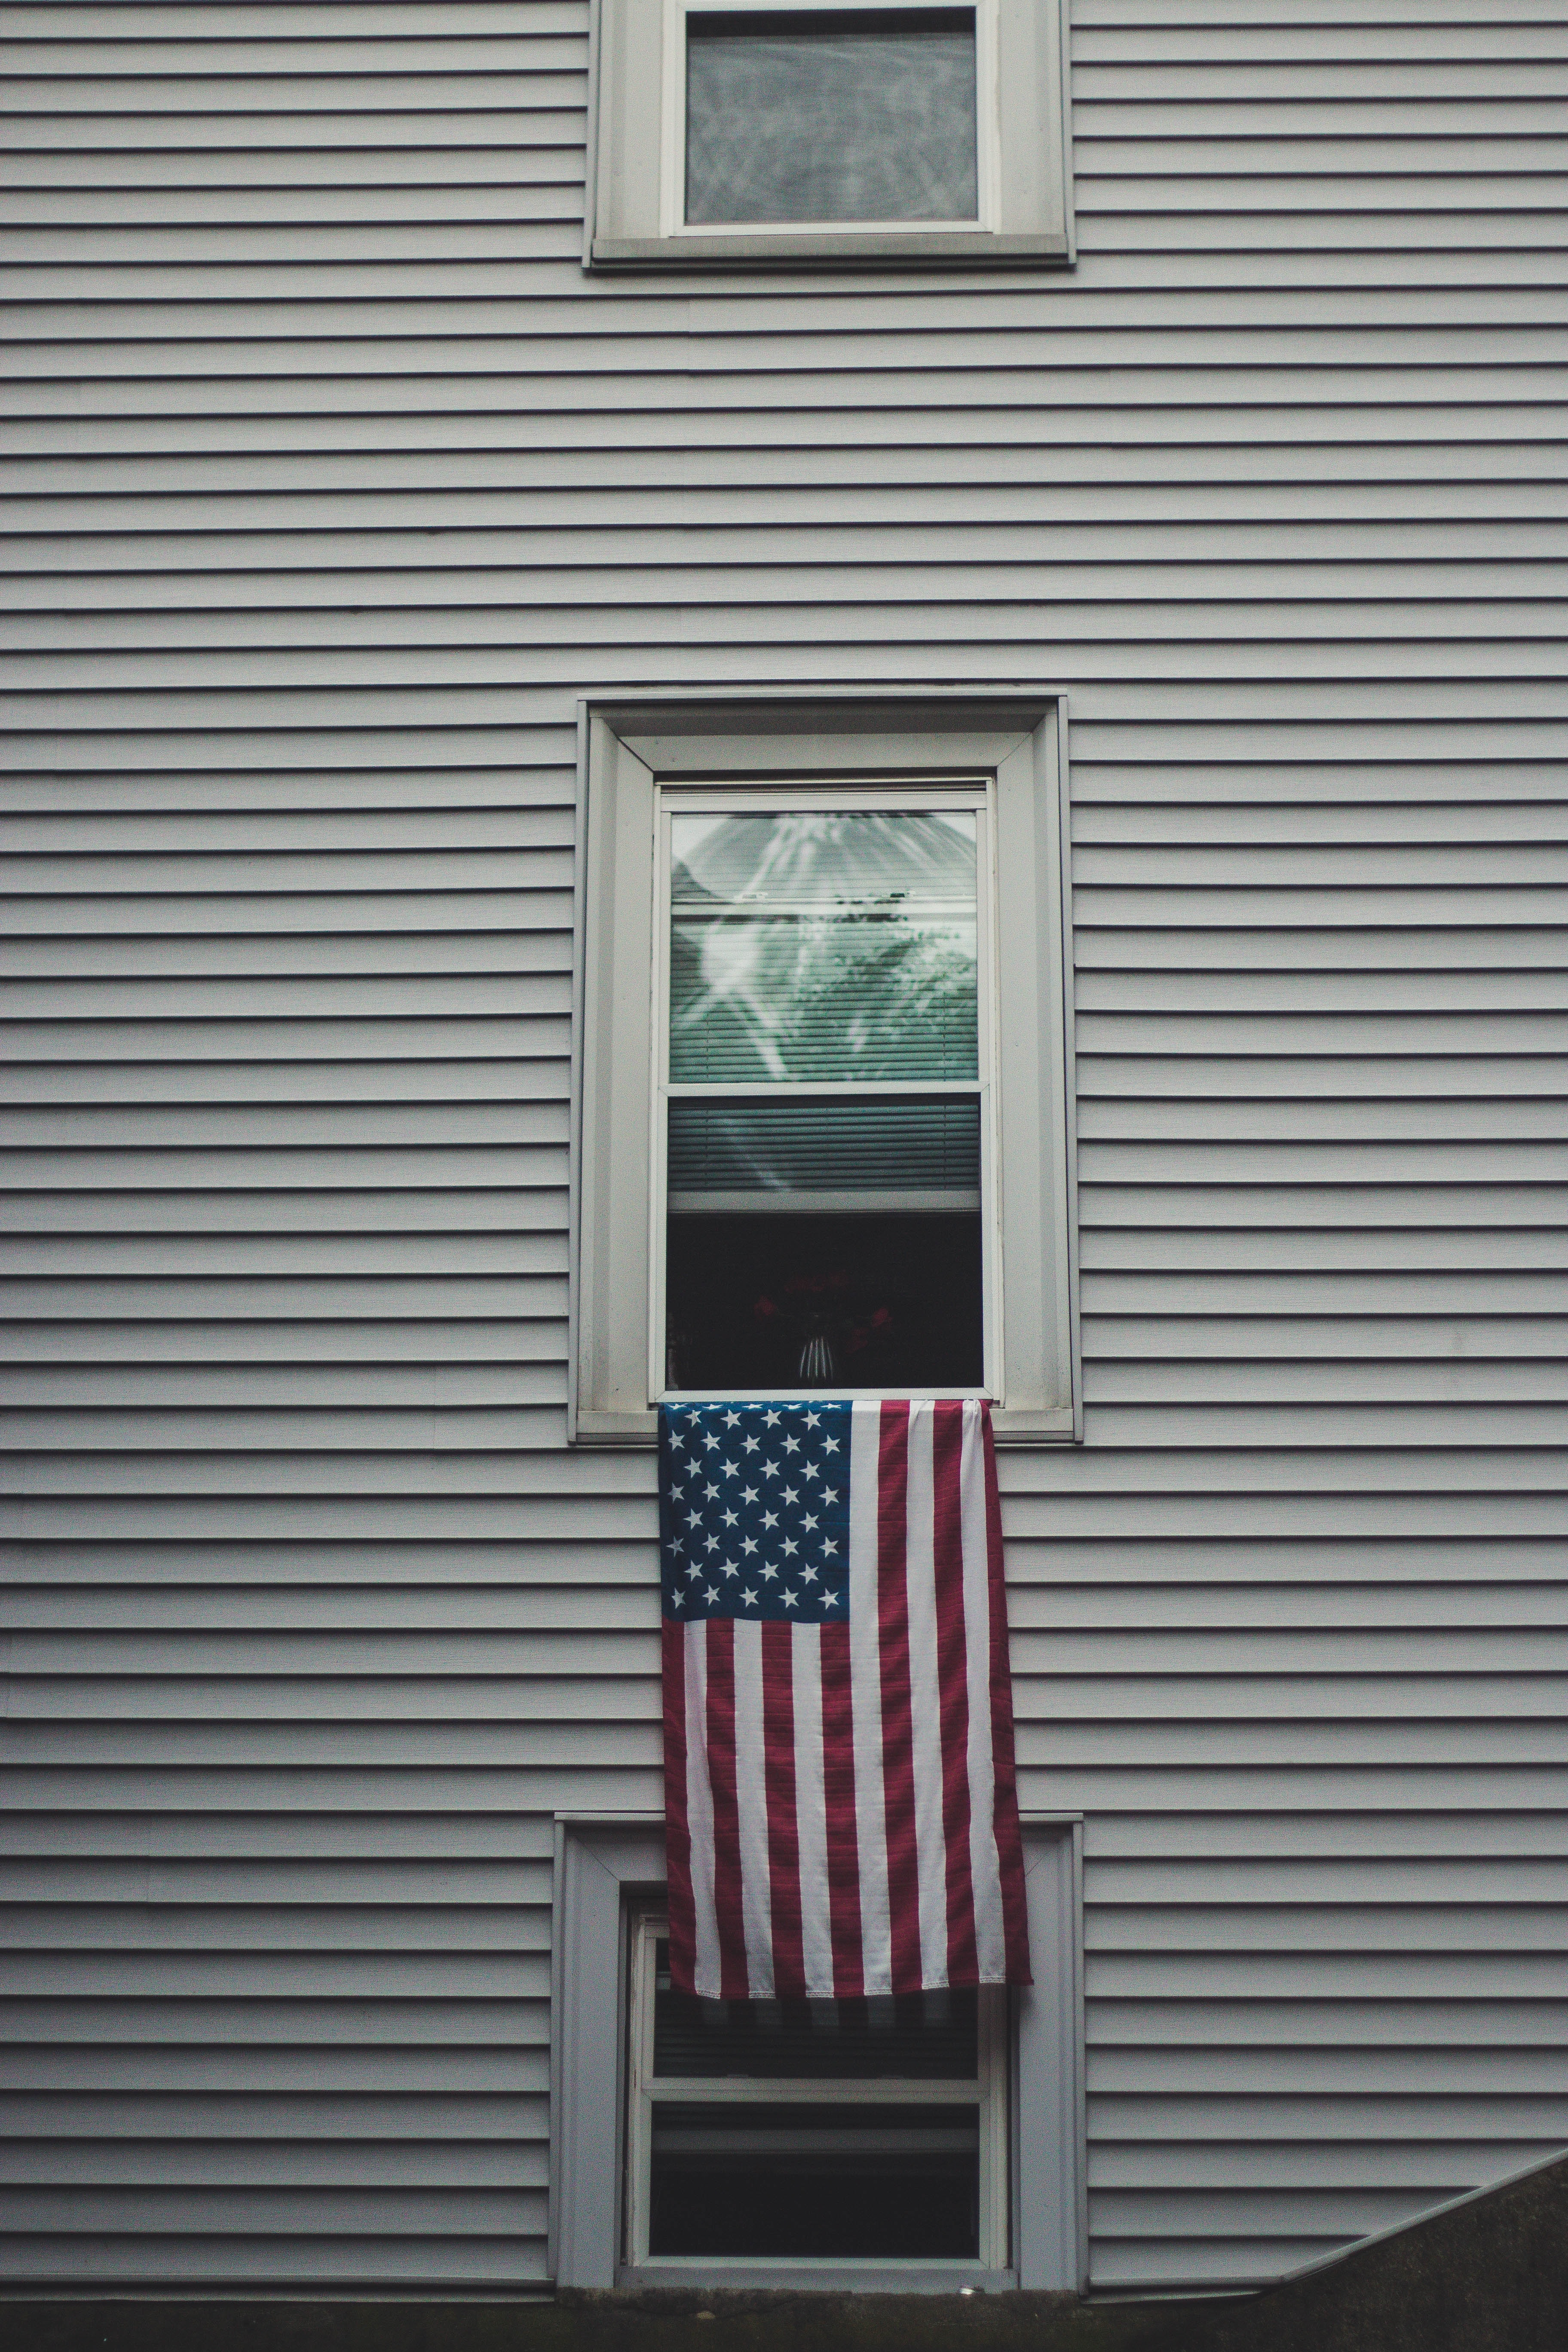 USA flag on window pane